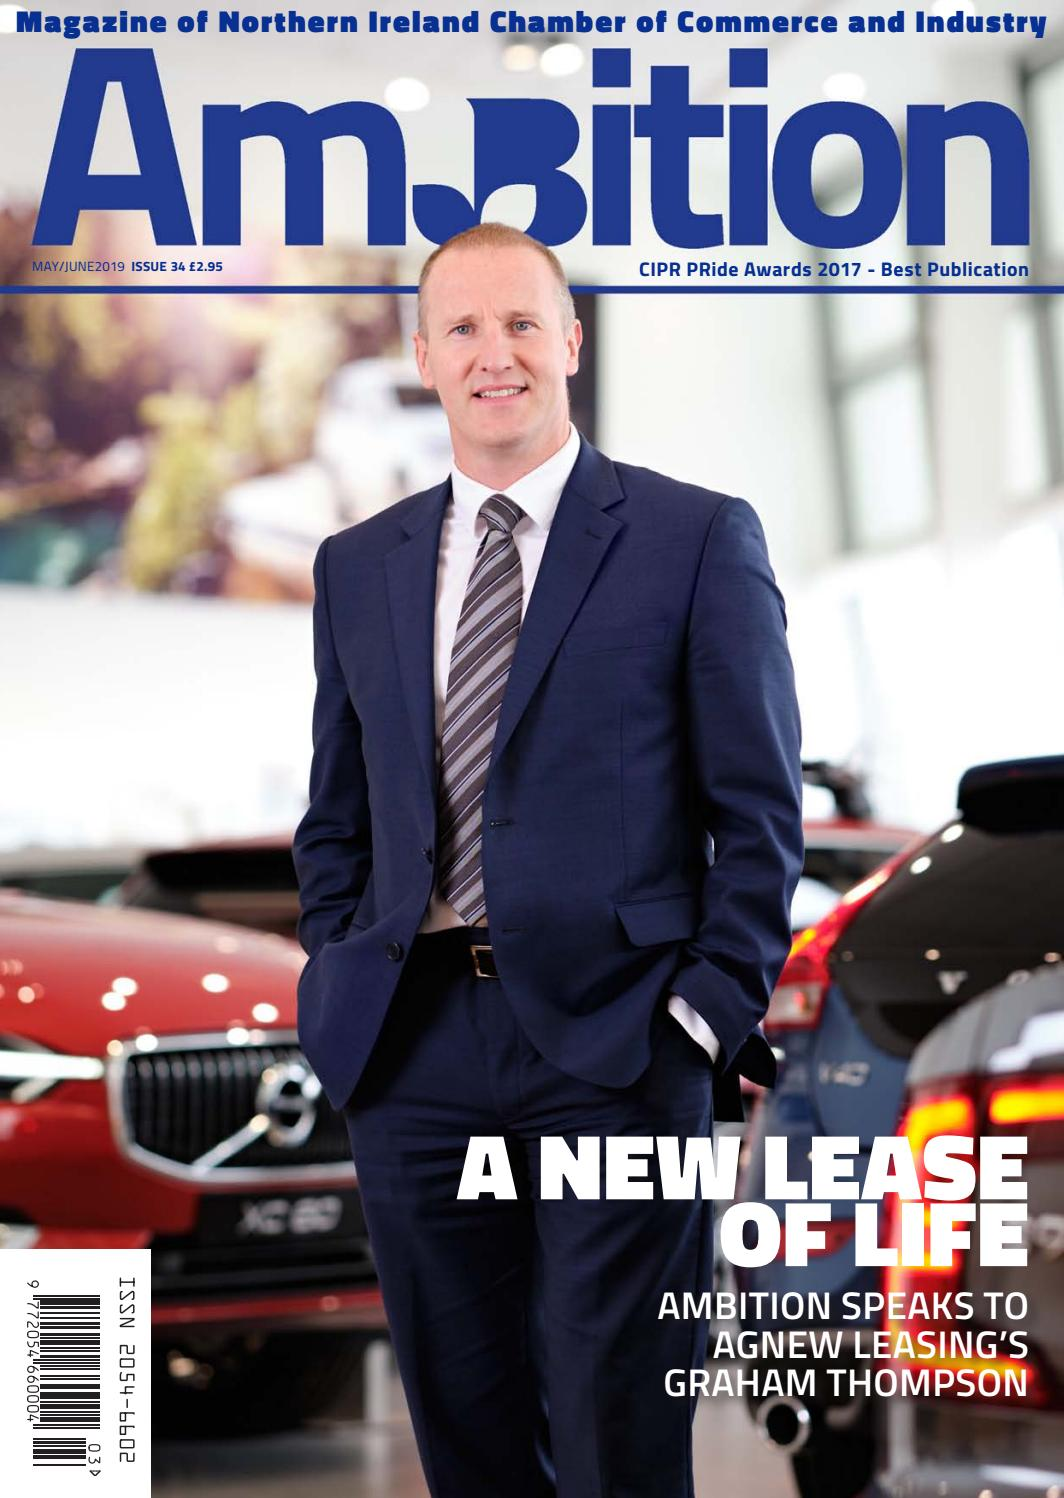 Ambition Issue 34 May June By Ni Chamber Of Commerce And Industry Issuu